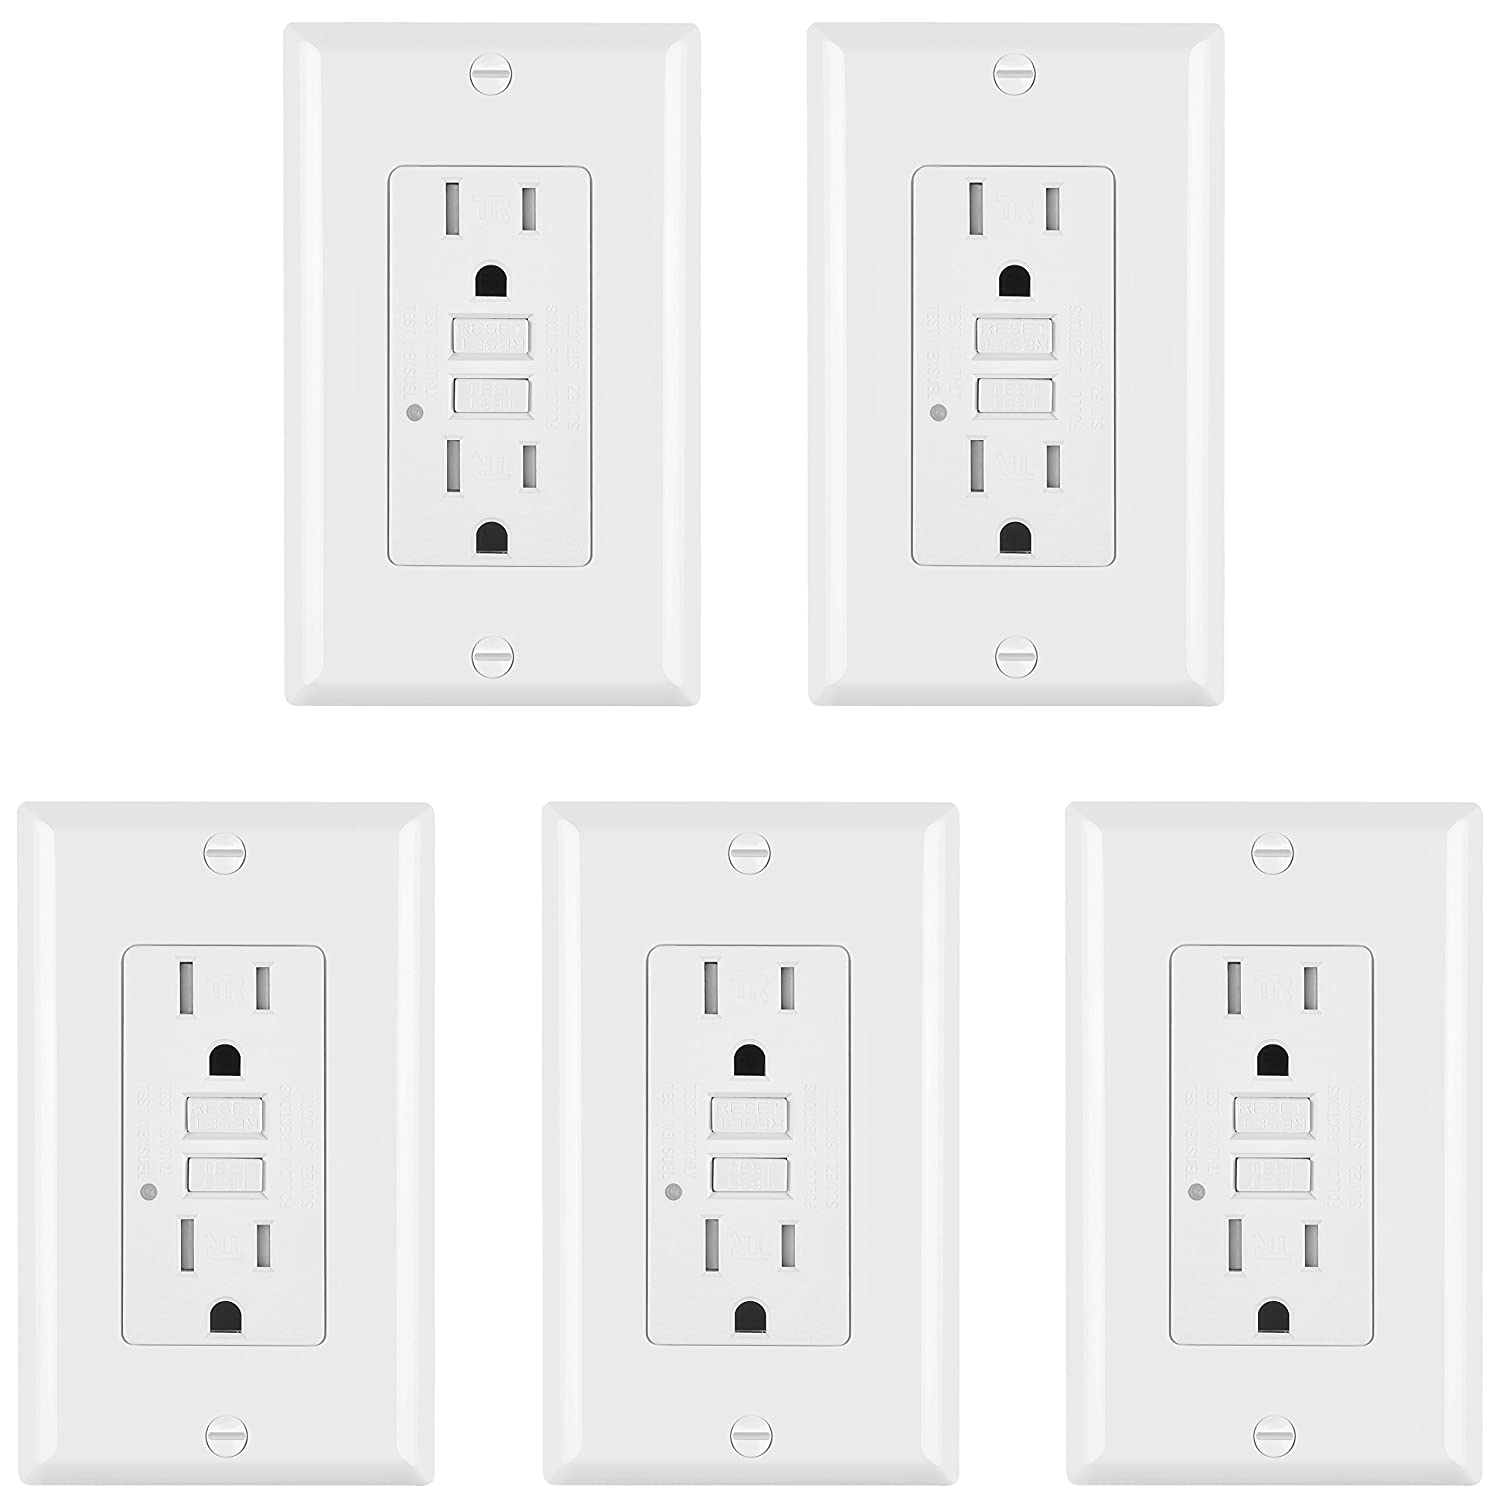 [2 Pack] ELECTEK 15A/125V Tamper Resistant GFCI Receptacle Outlet with LED Indicator, Decor Wall Plate and Screw Included, ETL Certified, White